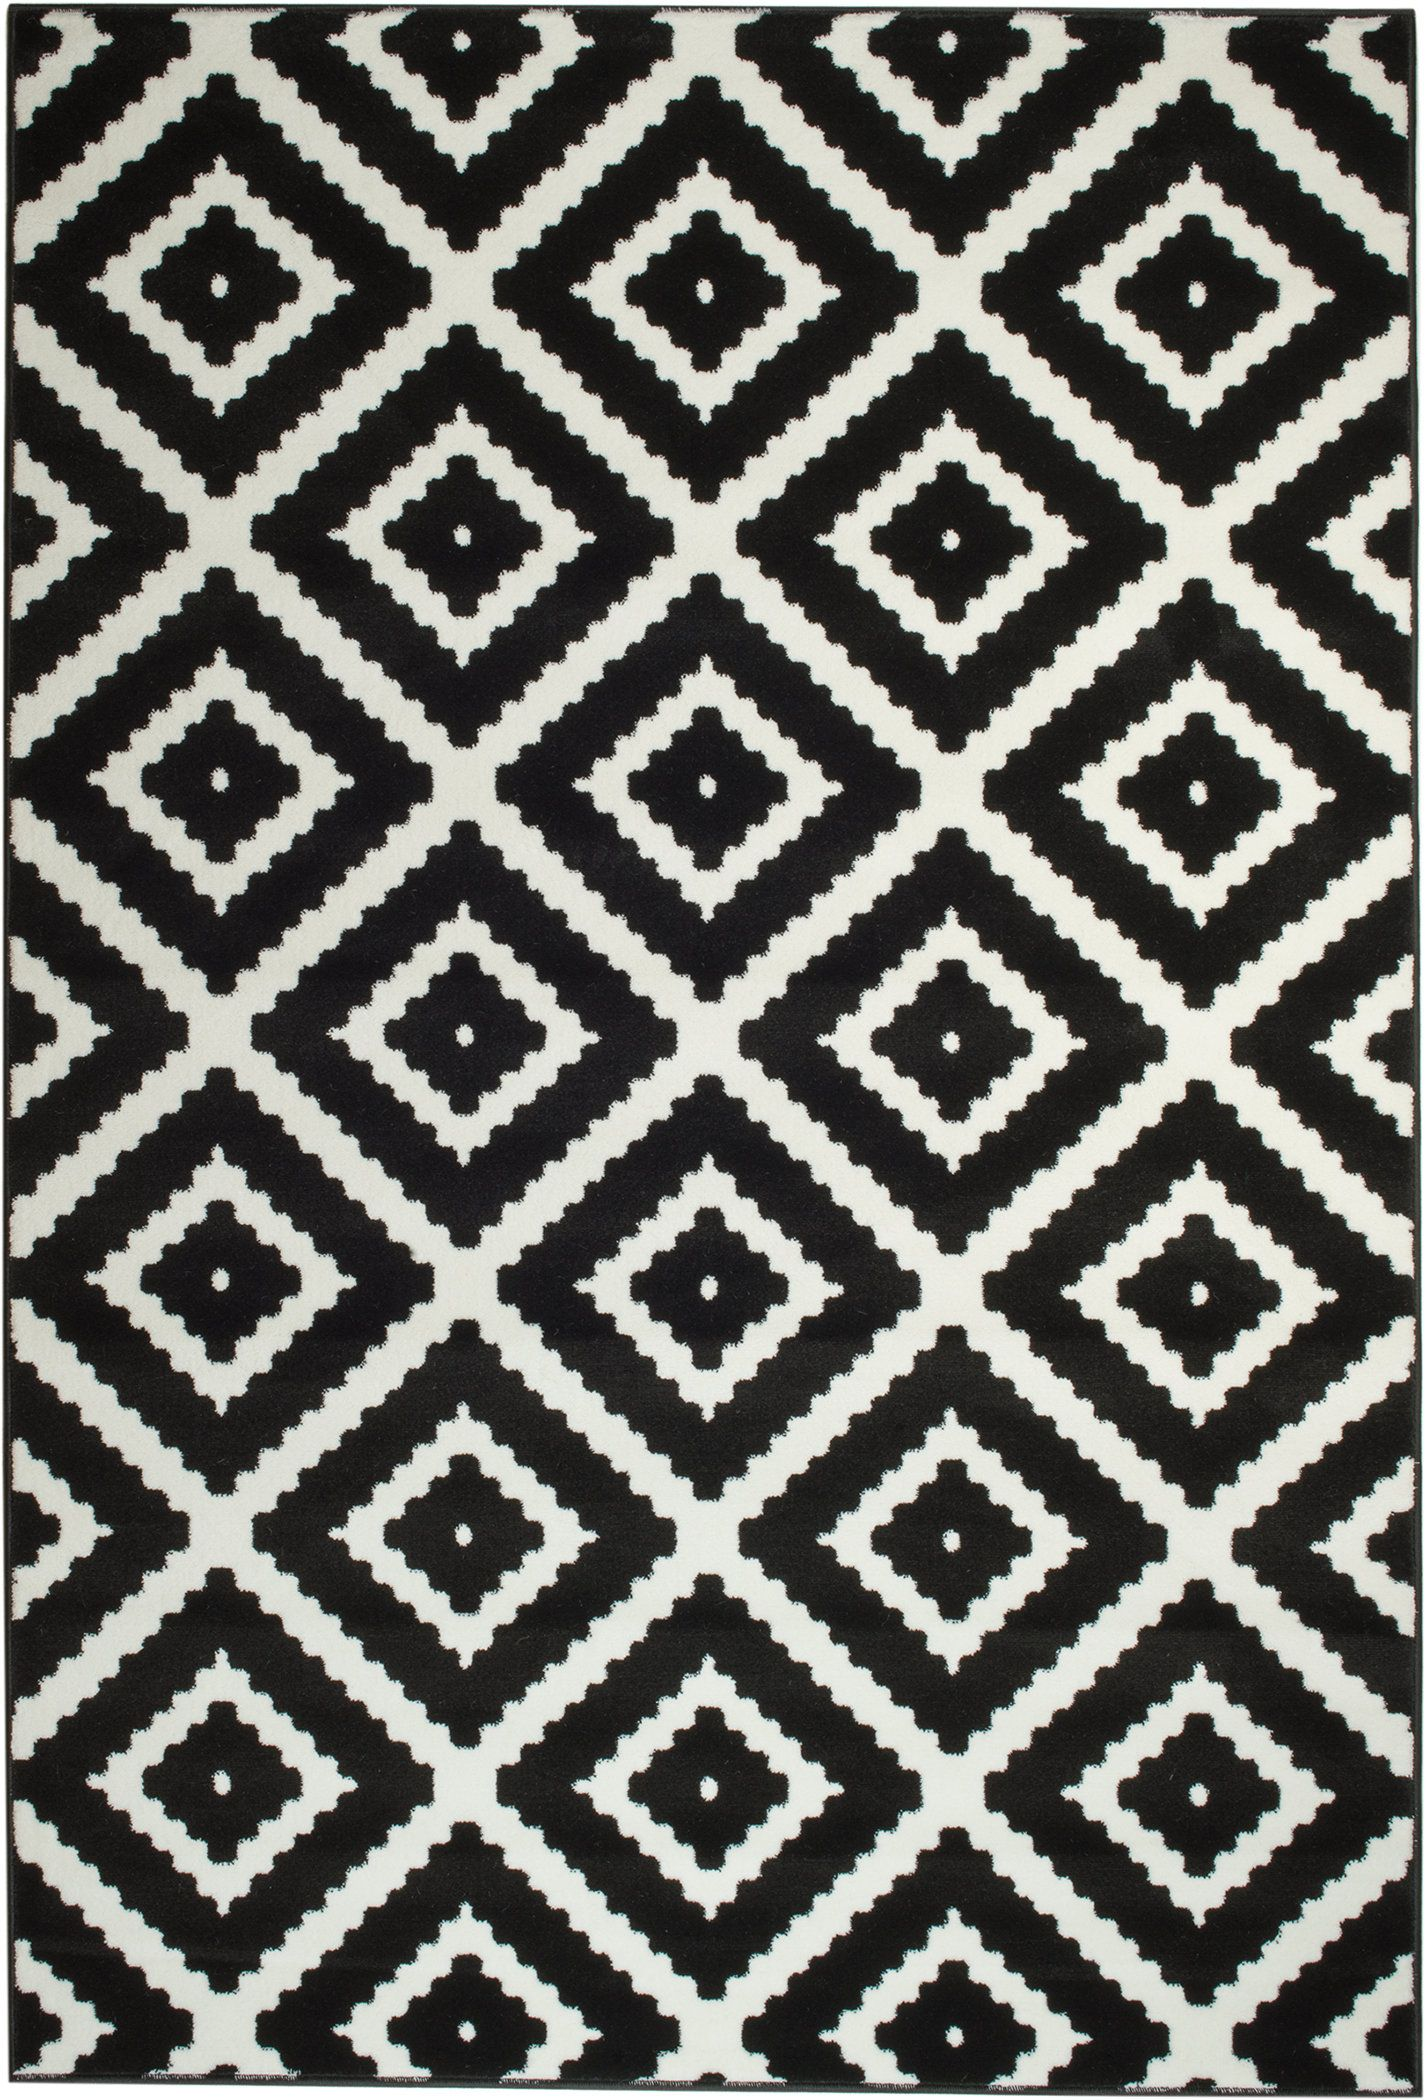 Leana Black Indoor Area Rug Joss Main Black White Rug White Rug Bedroom White Rug Nursery